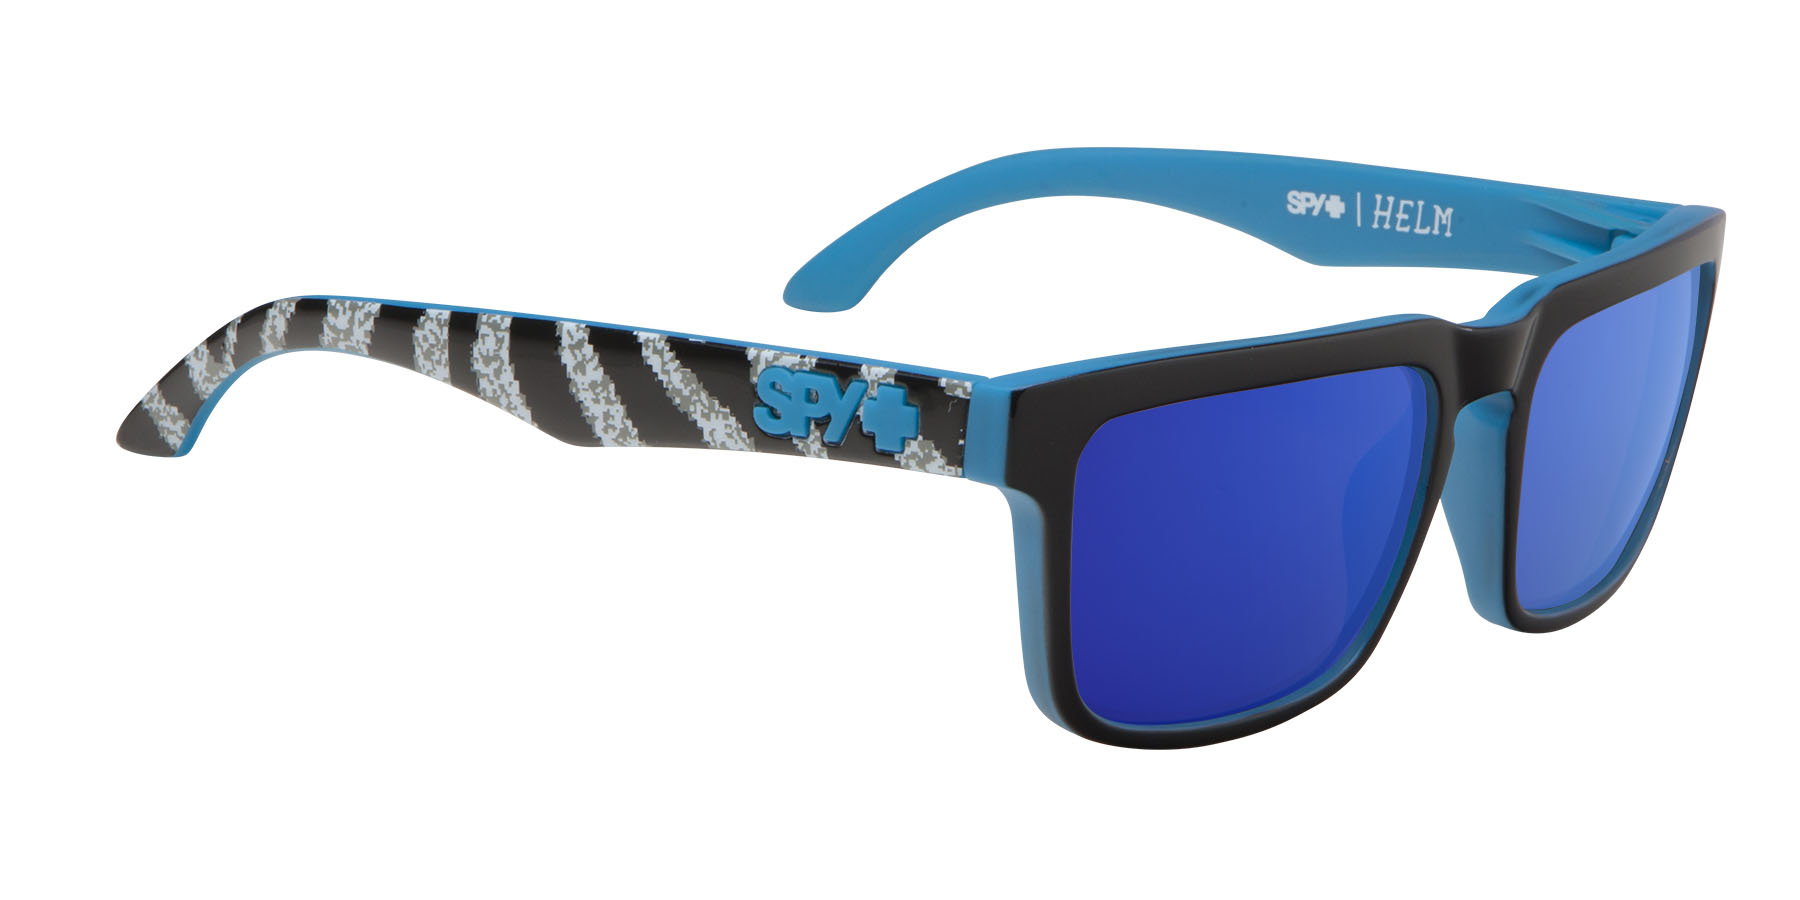 SPY-2014-EYEWEAR-KENBLOCK-HELM-BLUE-CONTACT